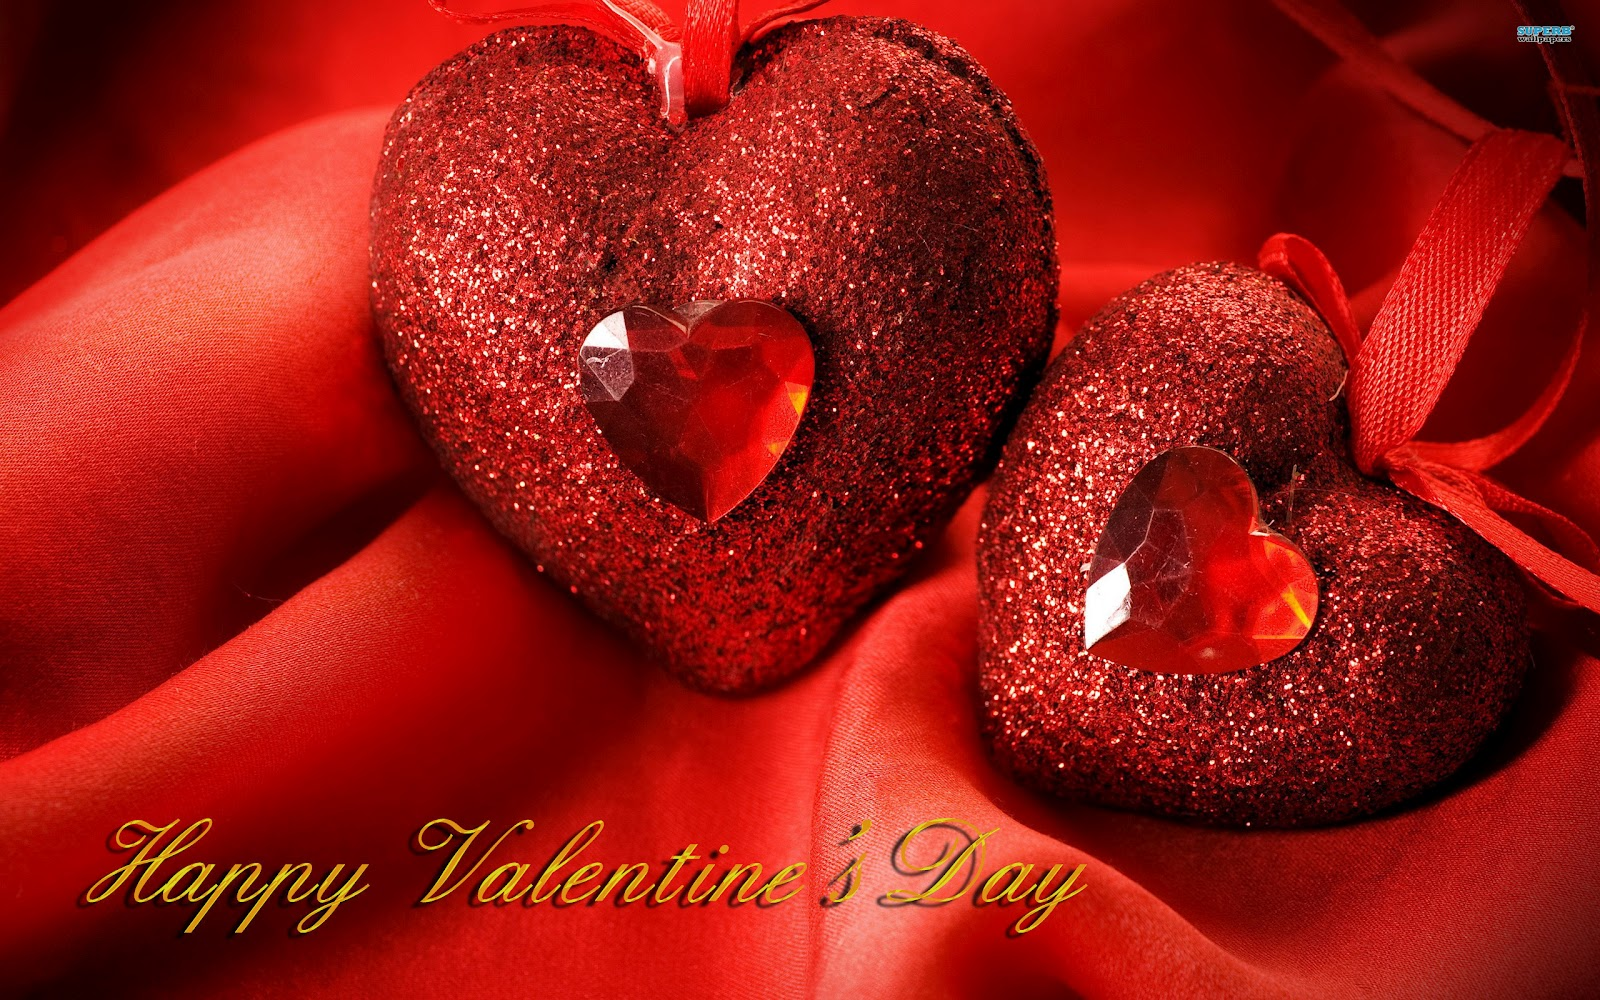 Valentines Day Heart Pictures Wallpapers 2013 8jpg 1600x1000